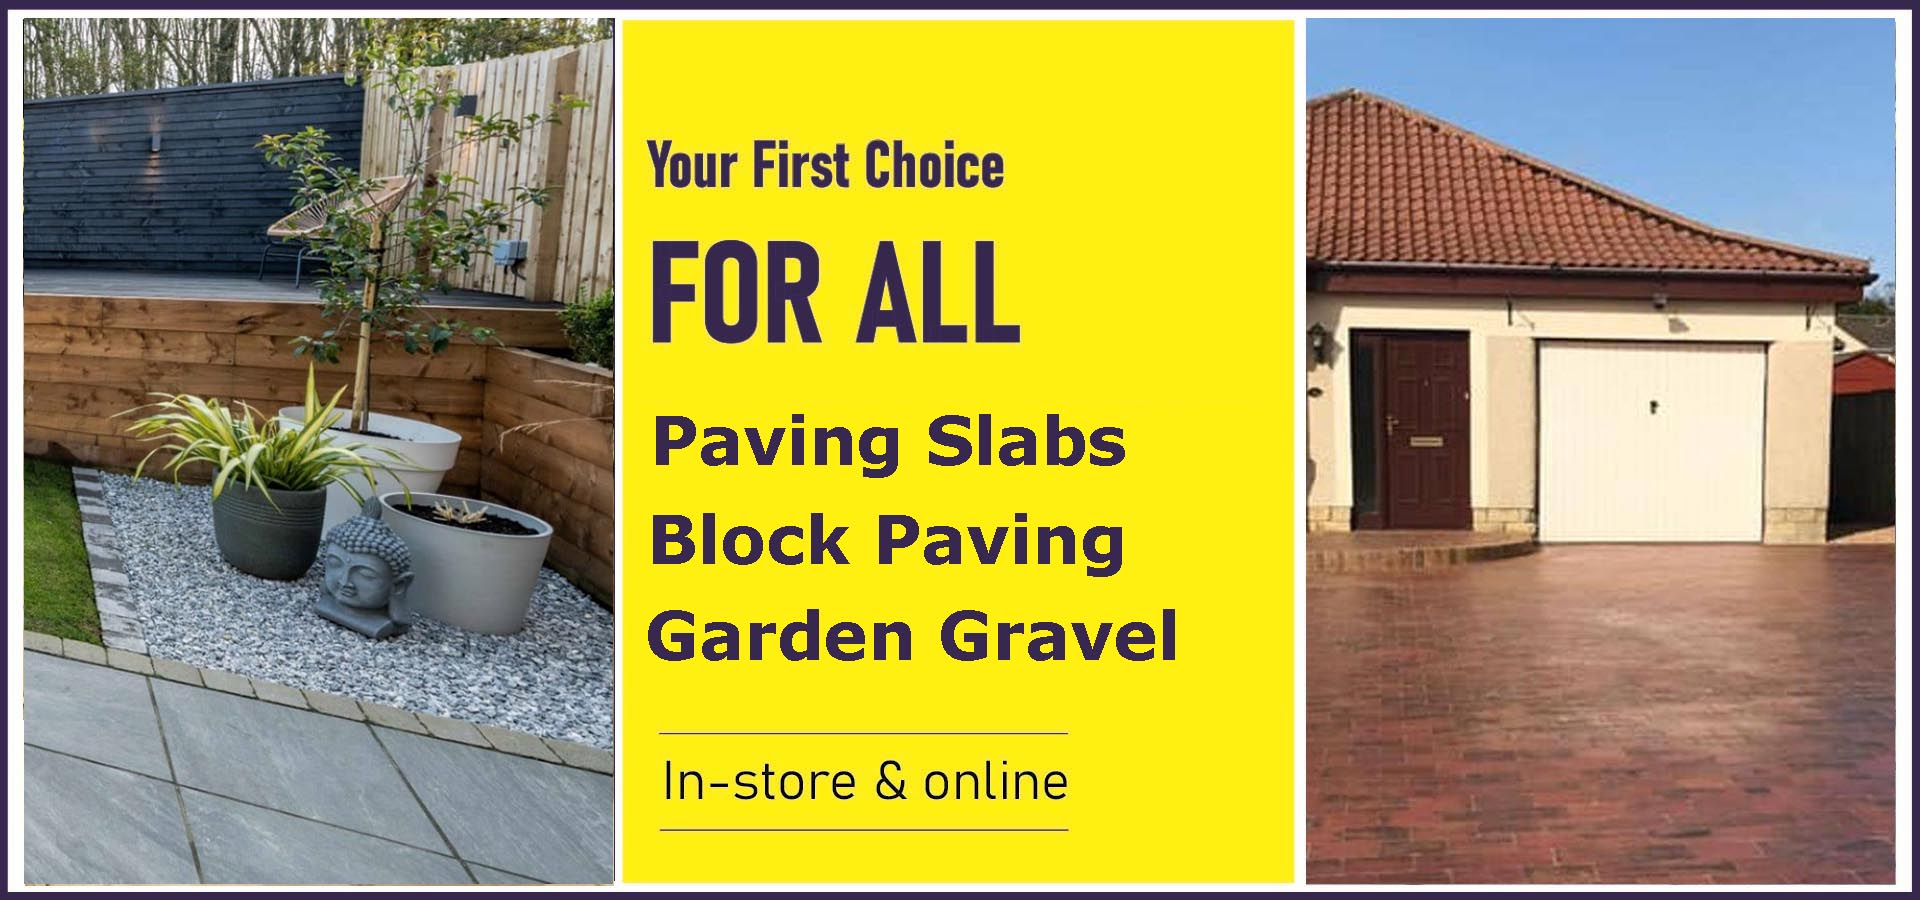 Paving Slabs, Block Paving